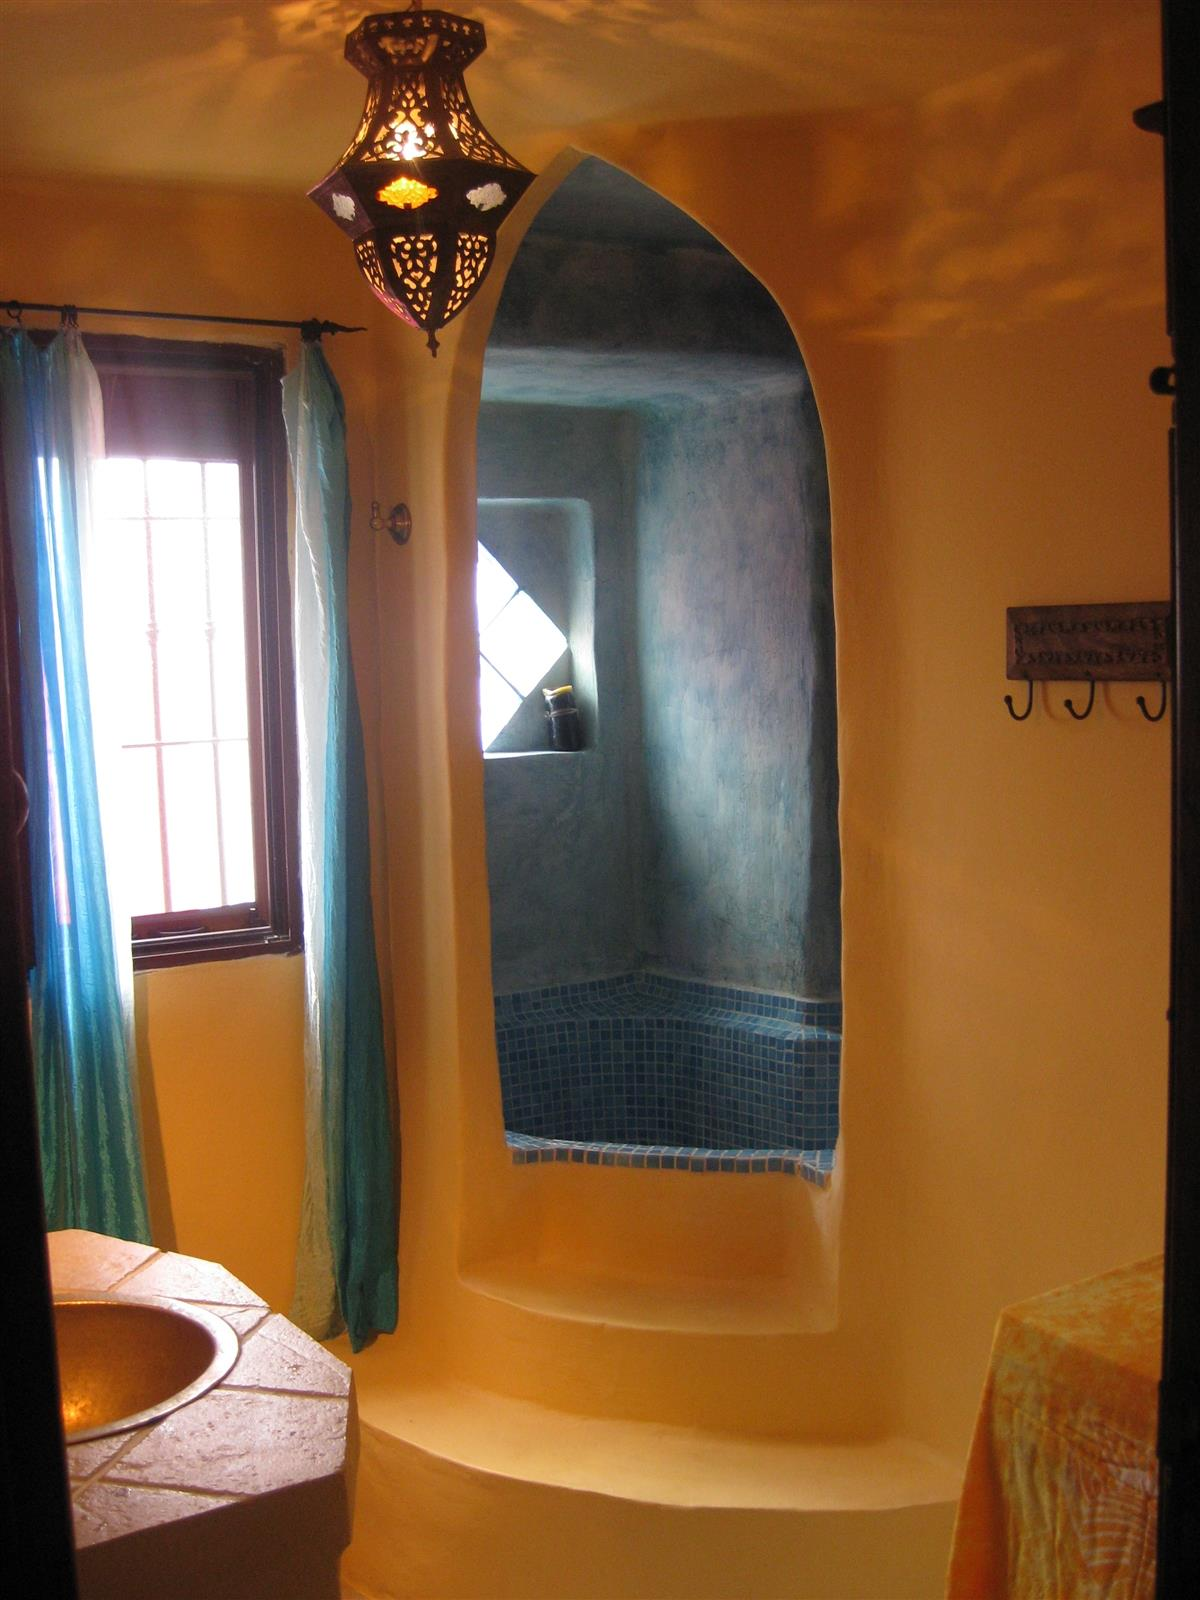 Moorish style Bathroom upstairs